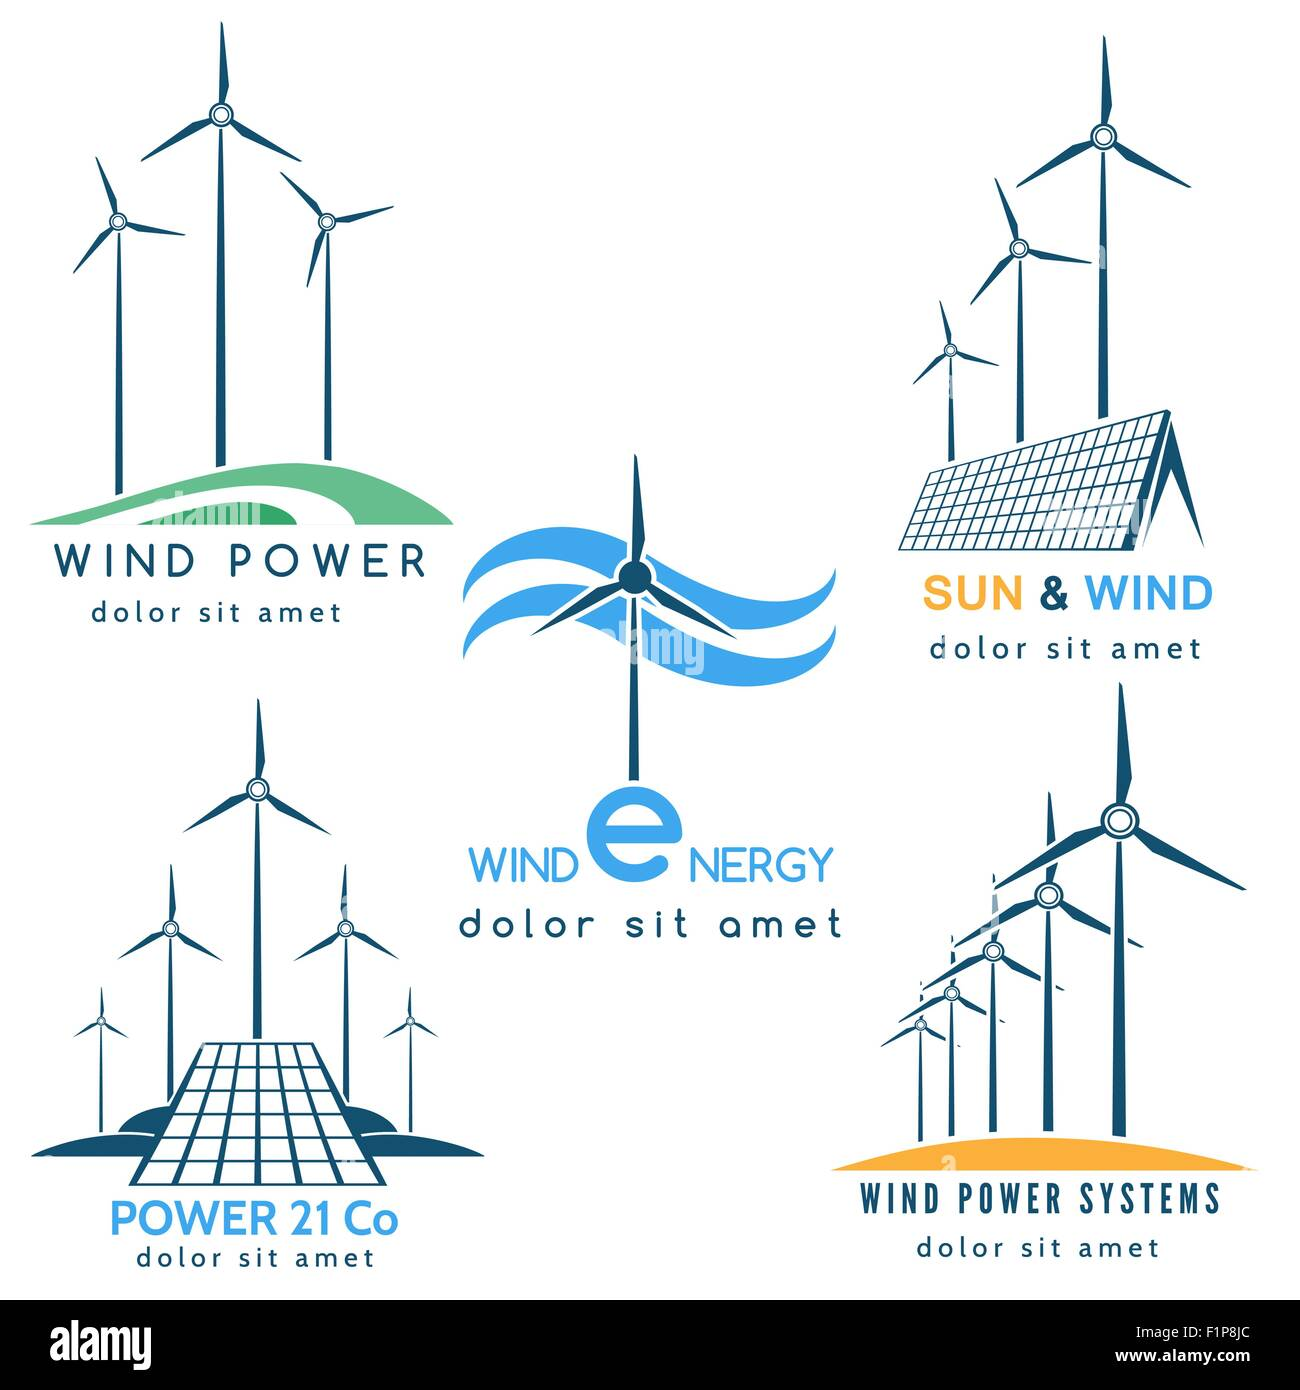 Wind Power Vectors Stock Photos Images Diagram Making Company Logo Or Emblem Set Solar And Energy Generators Turbines